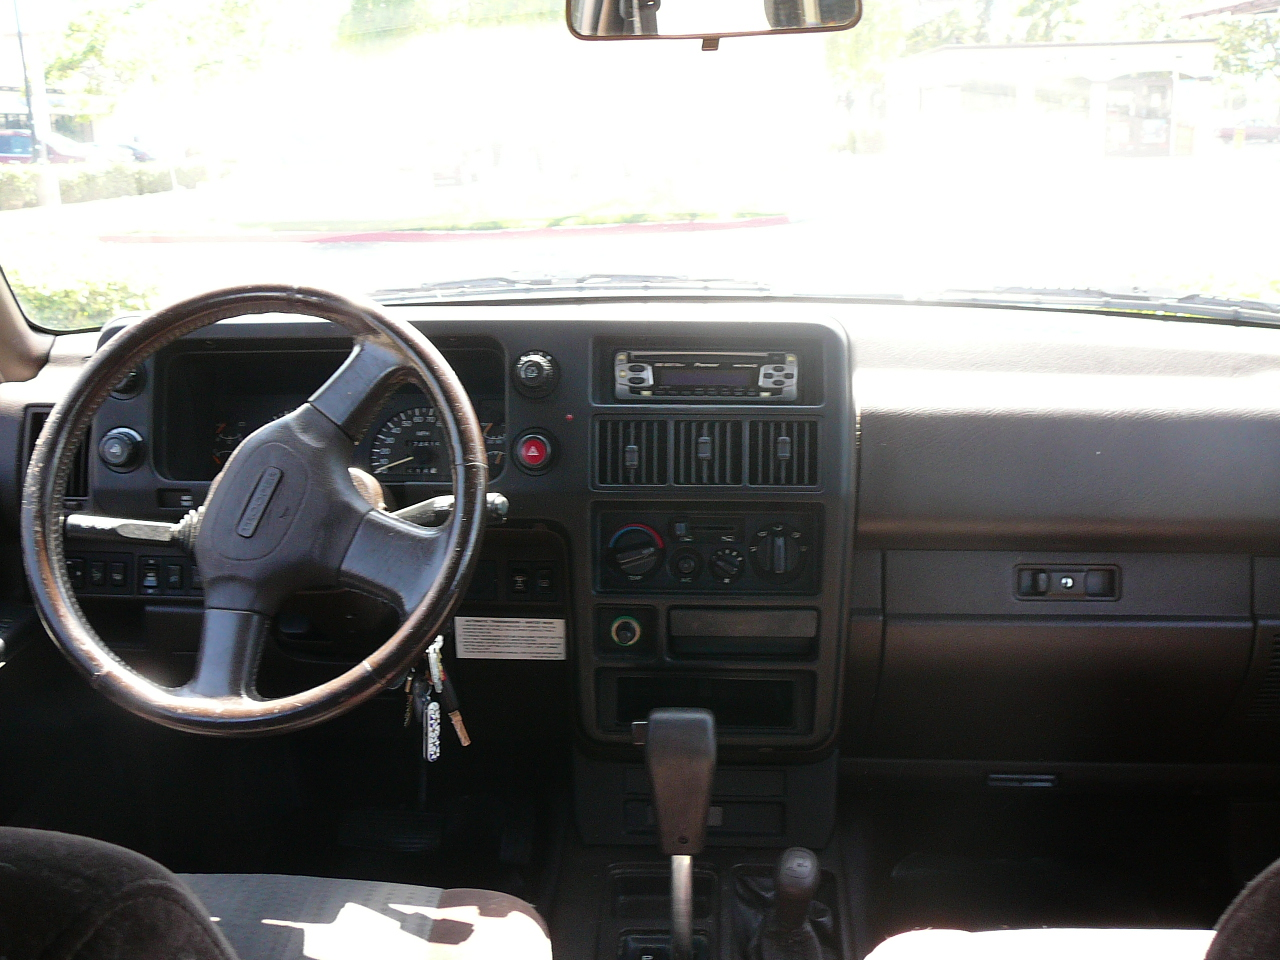 1999 Isuzu Trooper Interior